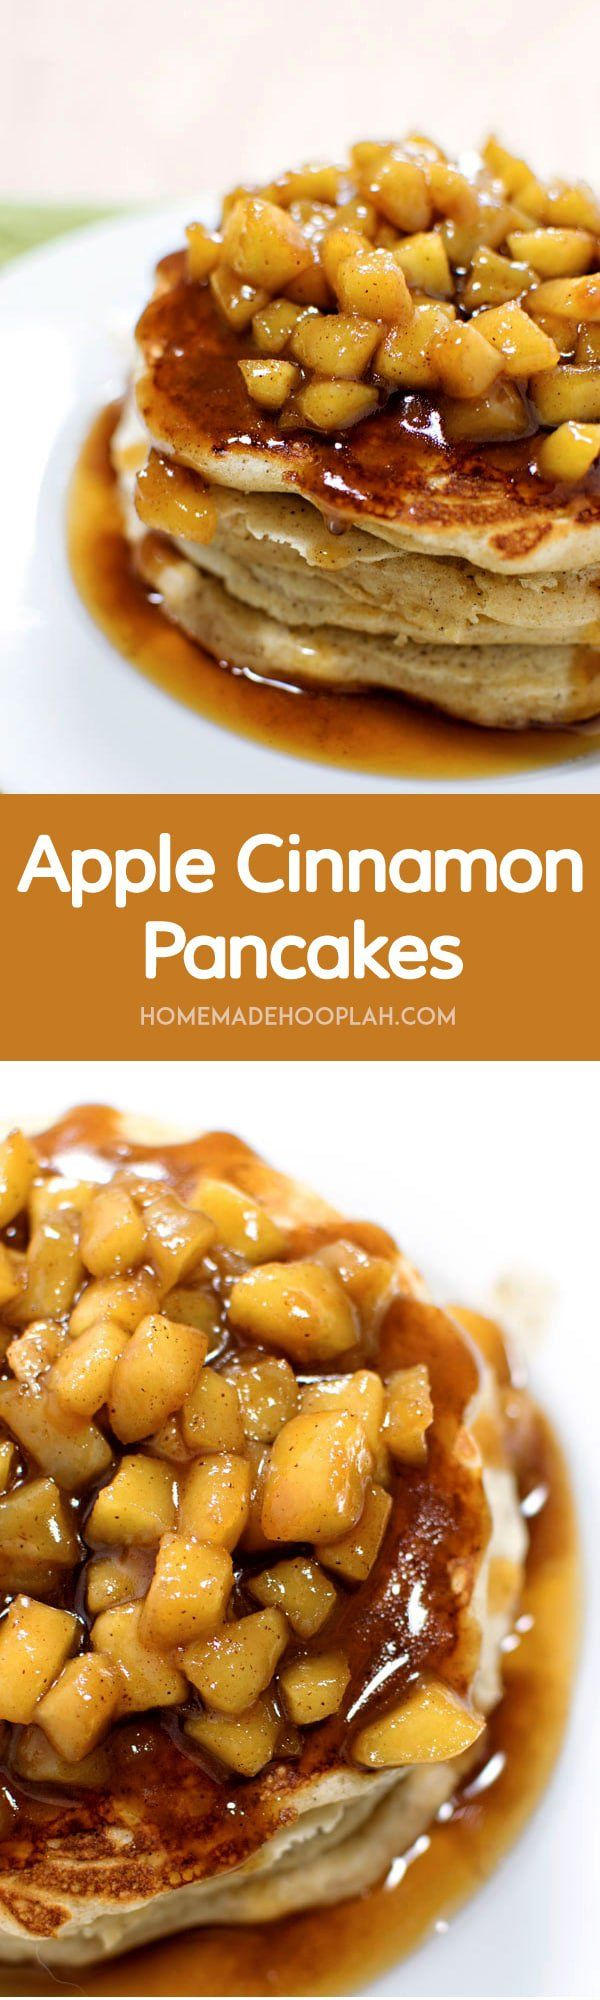 Apple Cinnamon Pancakes! Old fashioned cinnamon pancakes topped with fresh cuts of apple cooked in a cinnamon syrup glaze. | HomemadeHooplah.com